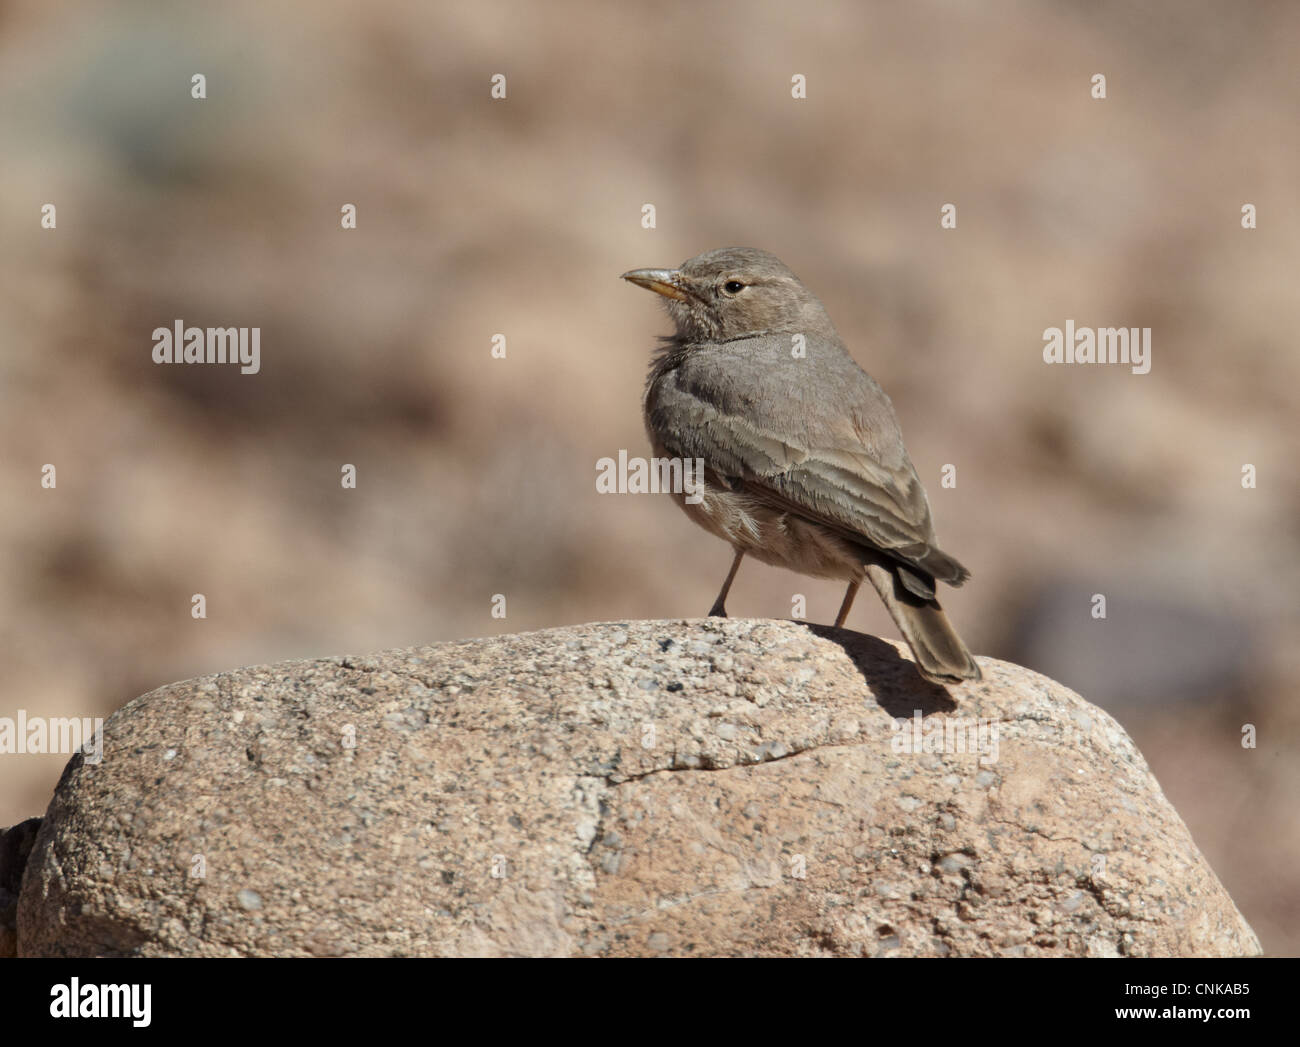 Desert Lark (Ammomanes deserti) adult, standing on rock, near Ouarzazate, Morocco, february - Stock Image